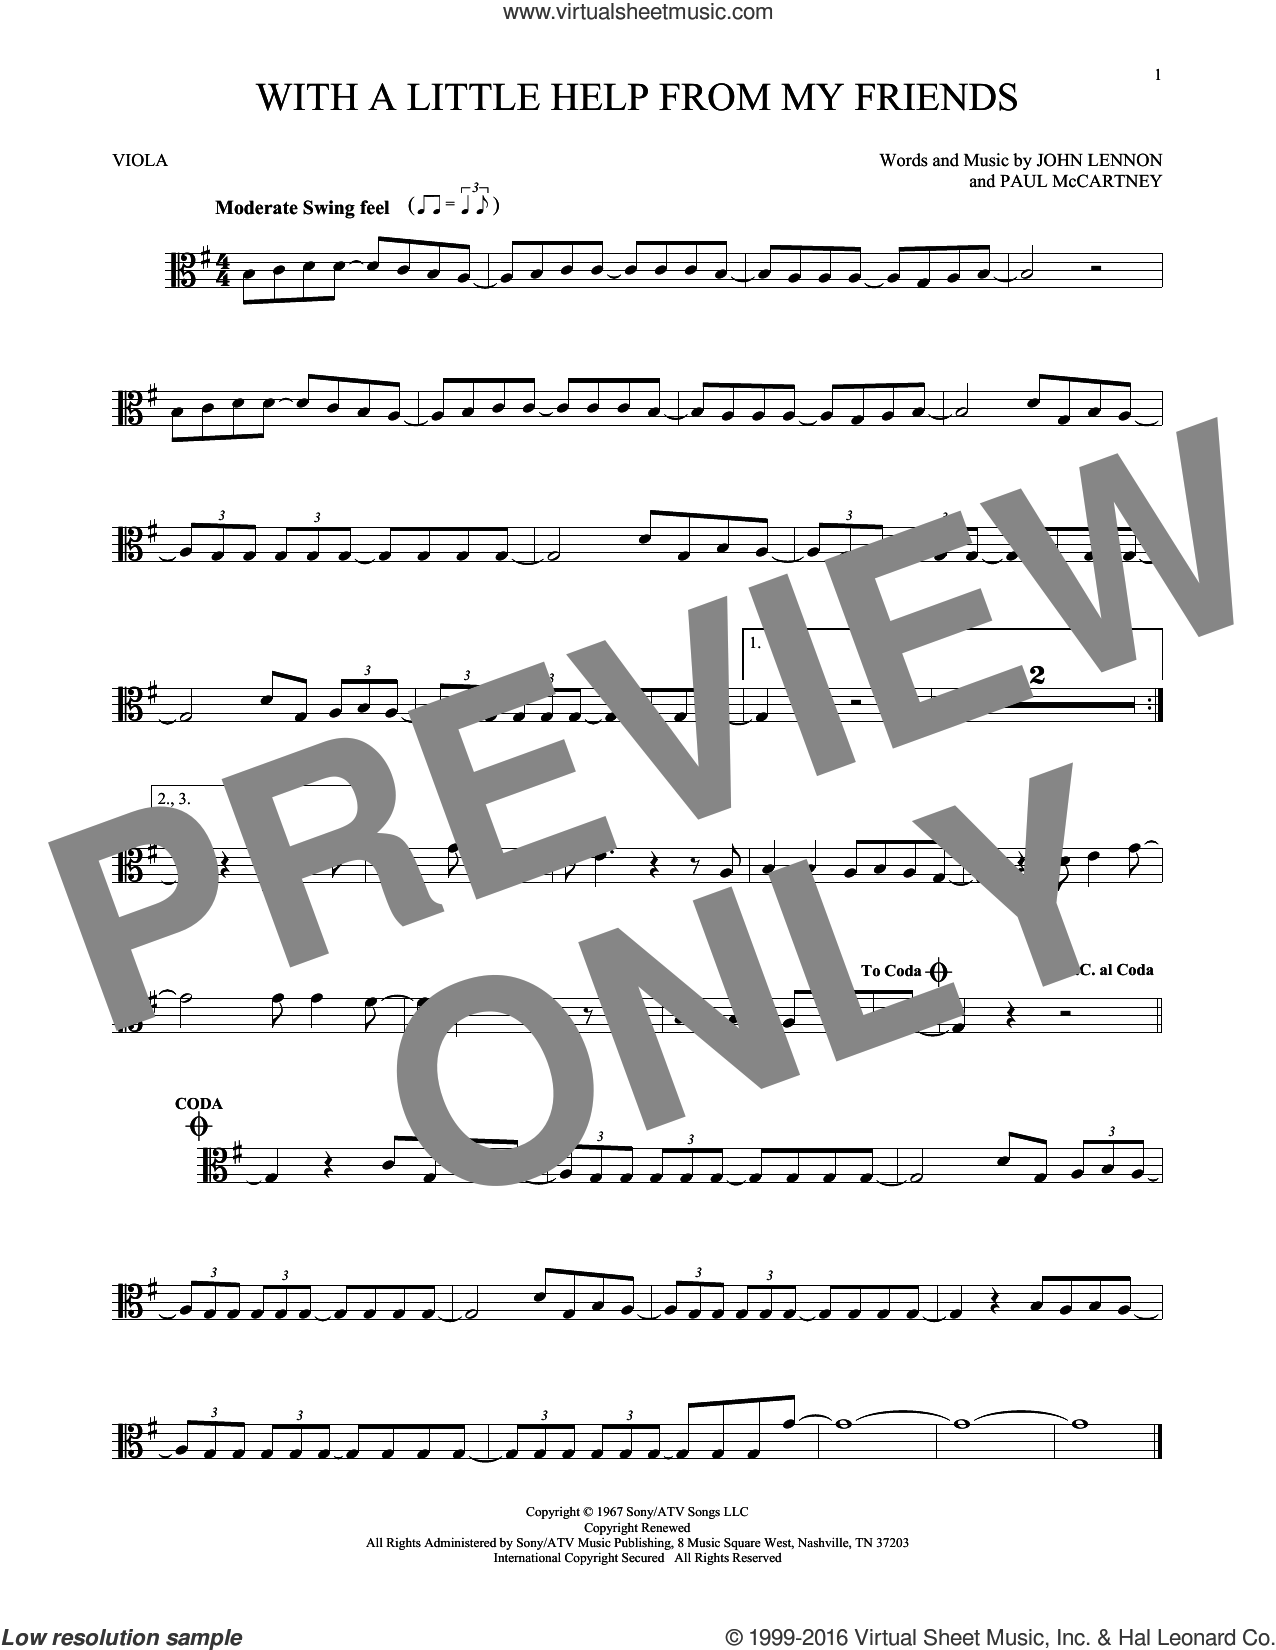 With A Little Help From My Friends sheet music for viola solo by The Beatles, Joe Cocker, John Lennon and Paul McCartney, intermediate skill level